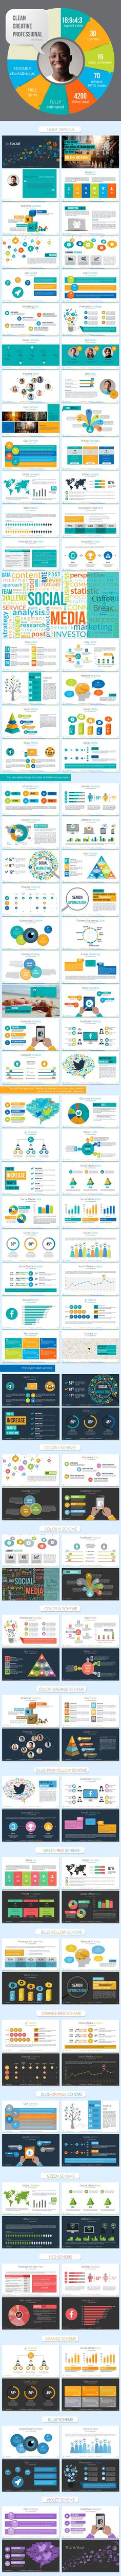 Boost Business Powerpoint Template  Business Powerpoint Templates